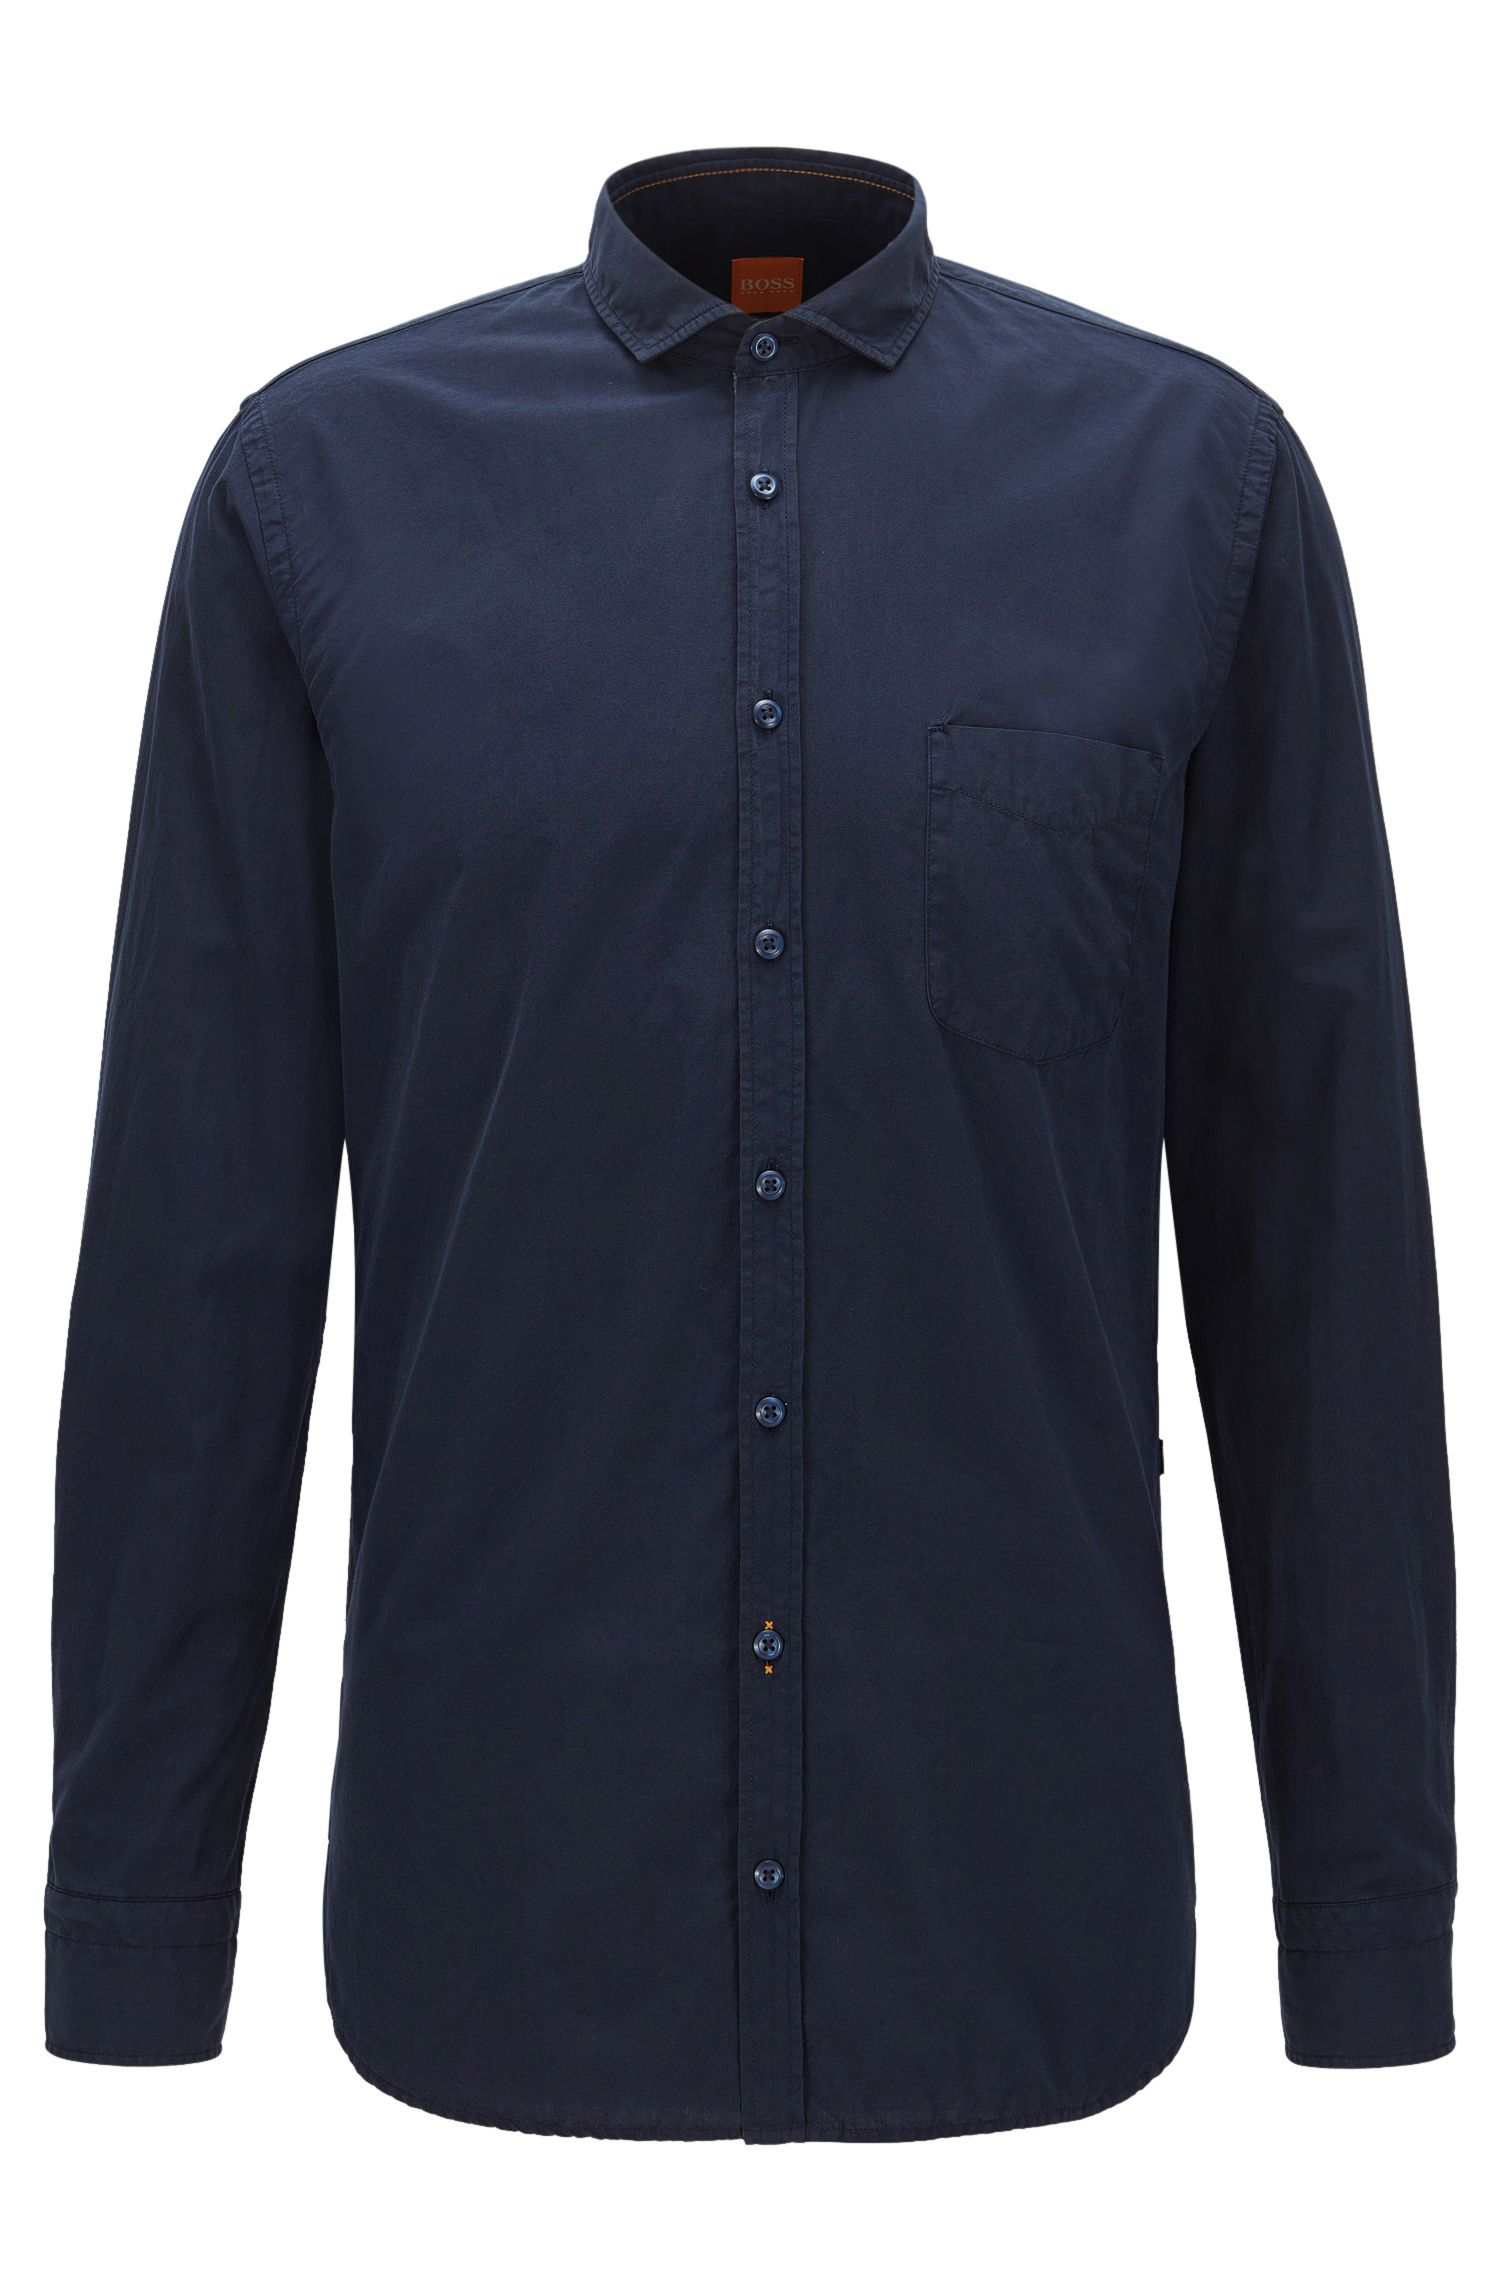 Slim-fit shirt in garment dyed cotton poplin